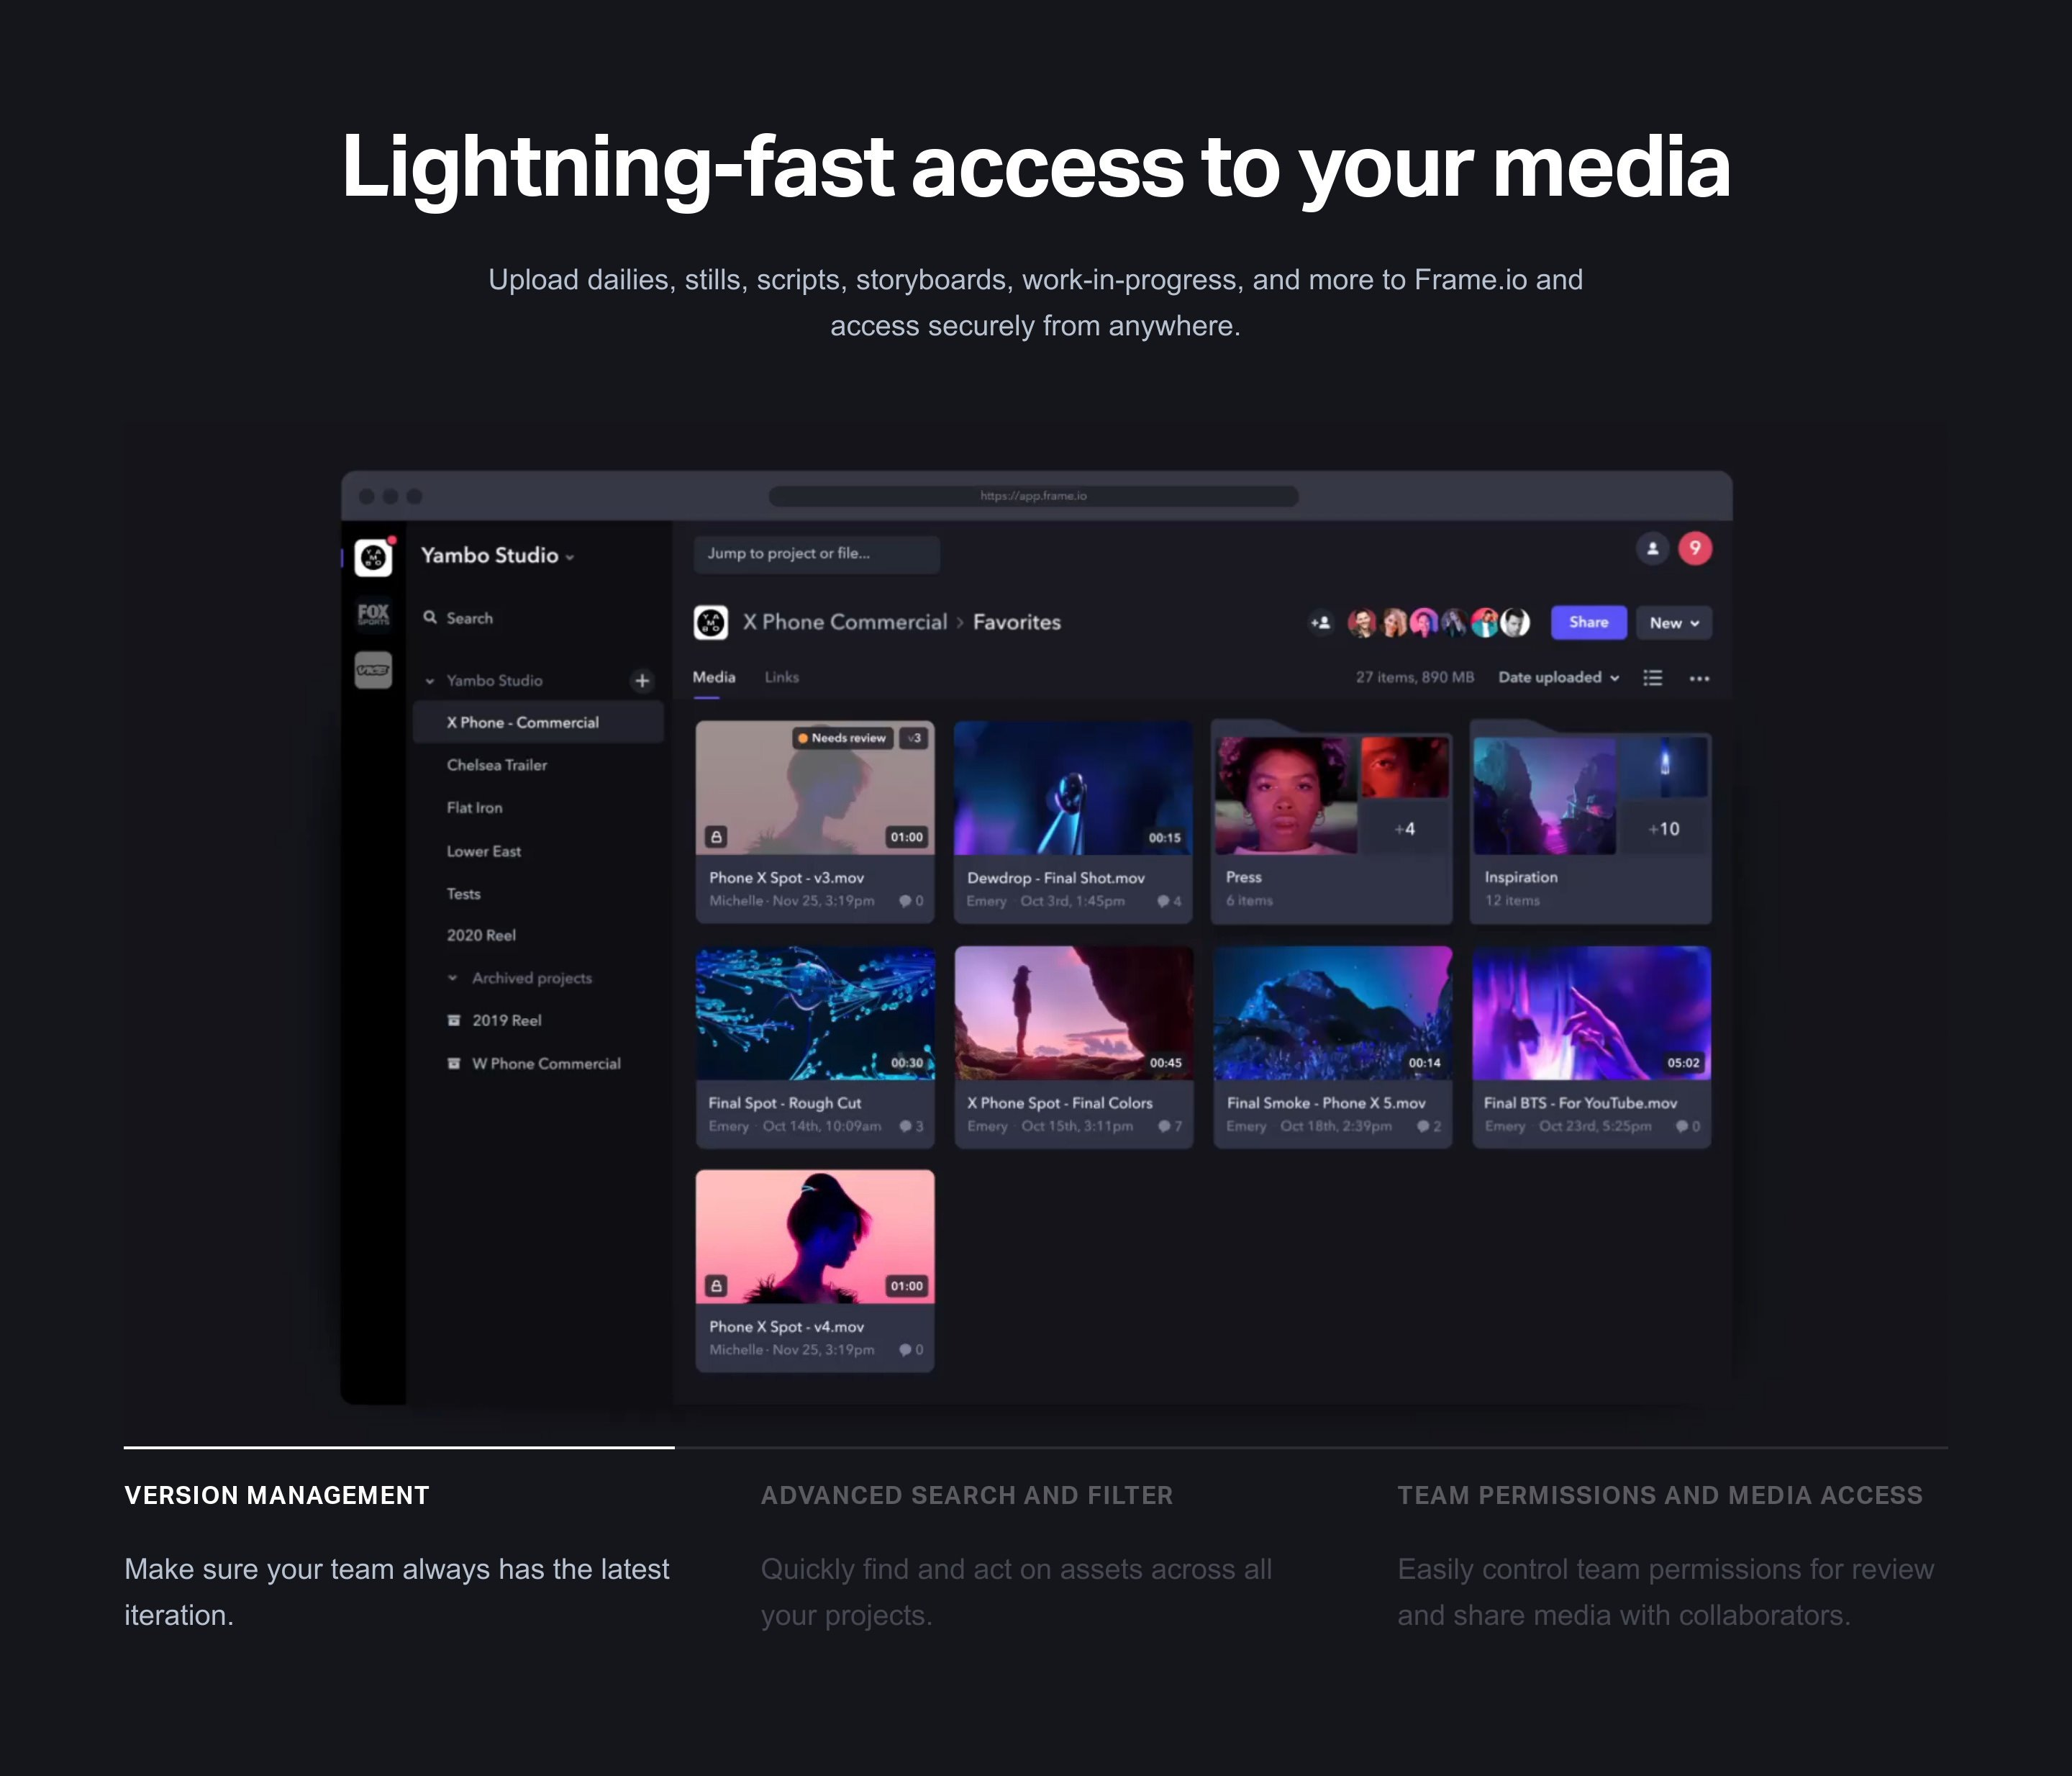 Features Slider with App Image